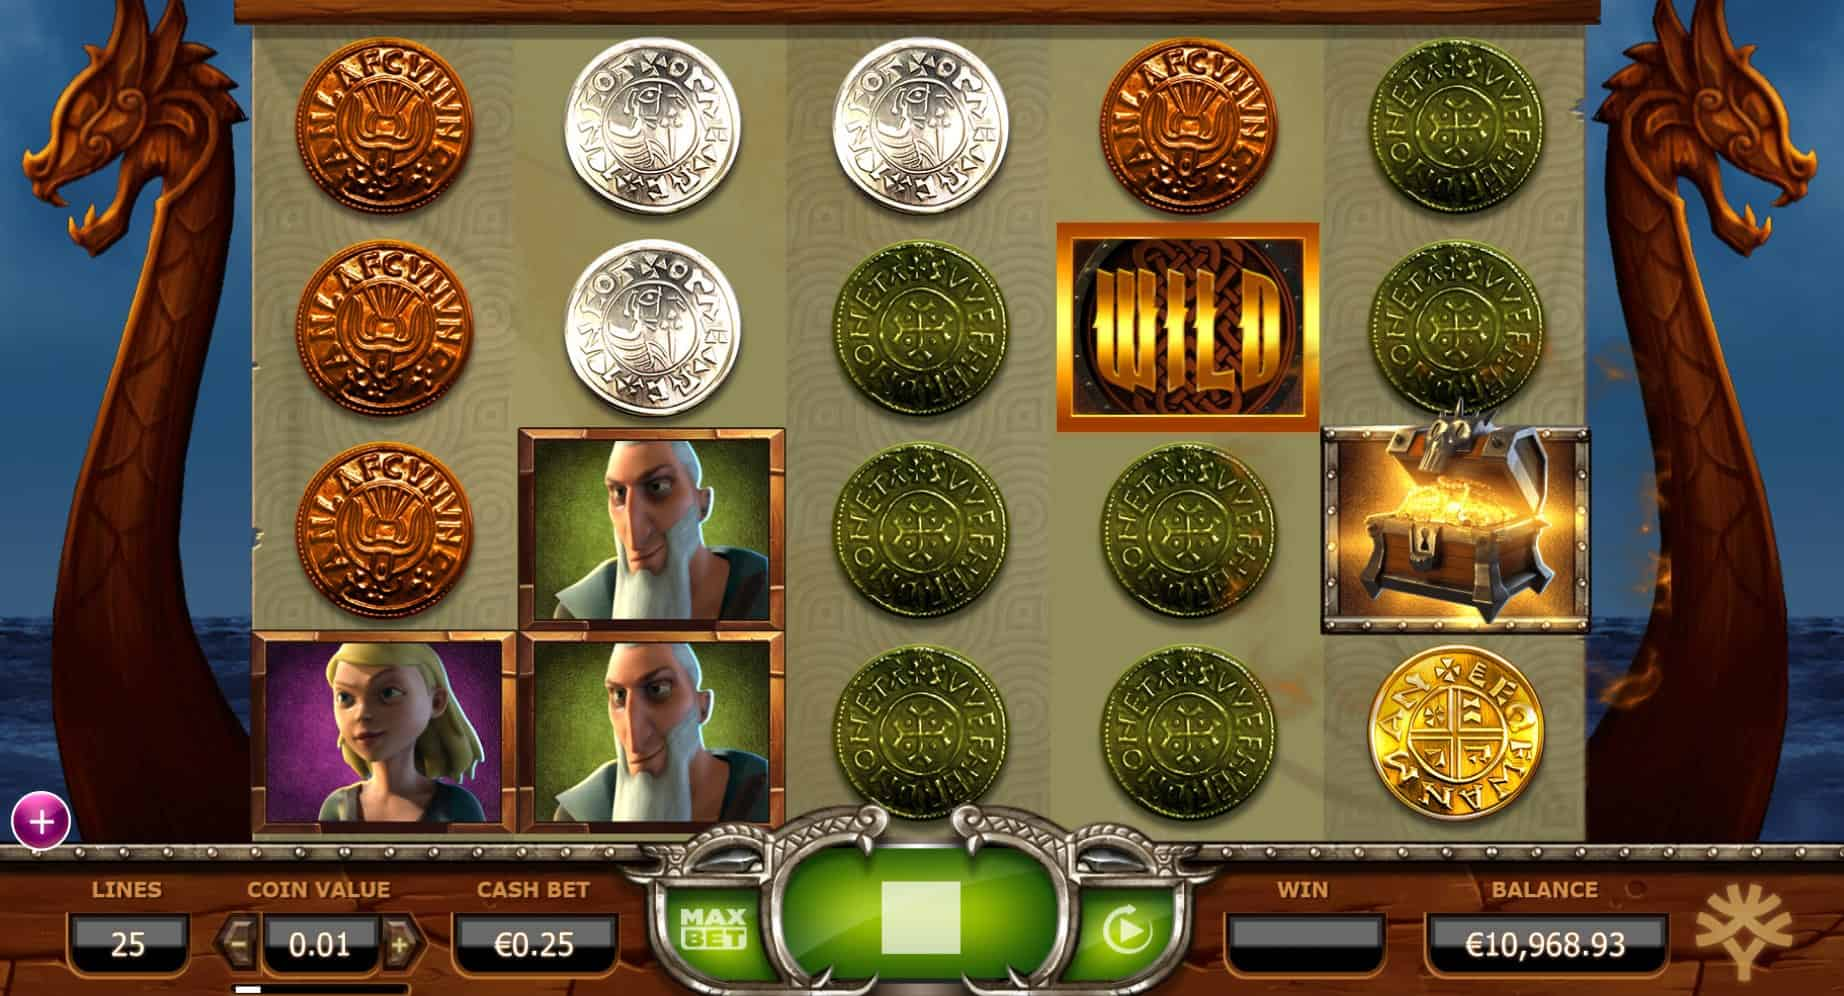 Yggdrasil - Vikings Go Wild - Treasure Chest - Casinogroundsdotcom